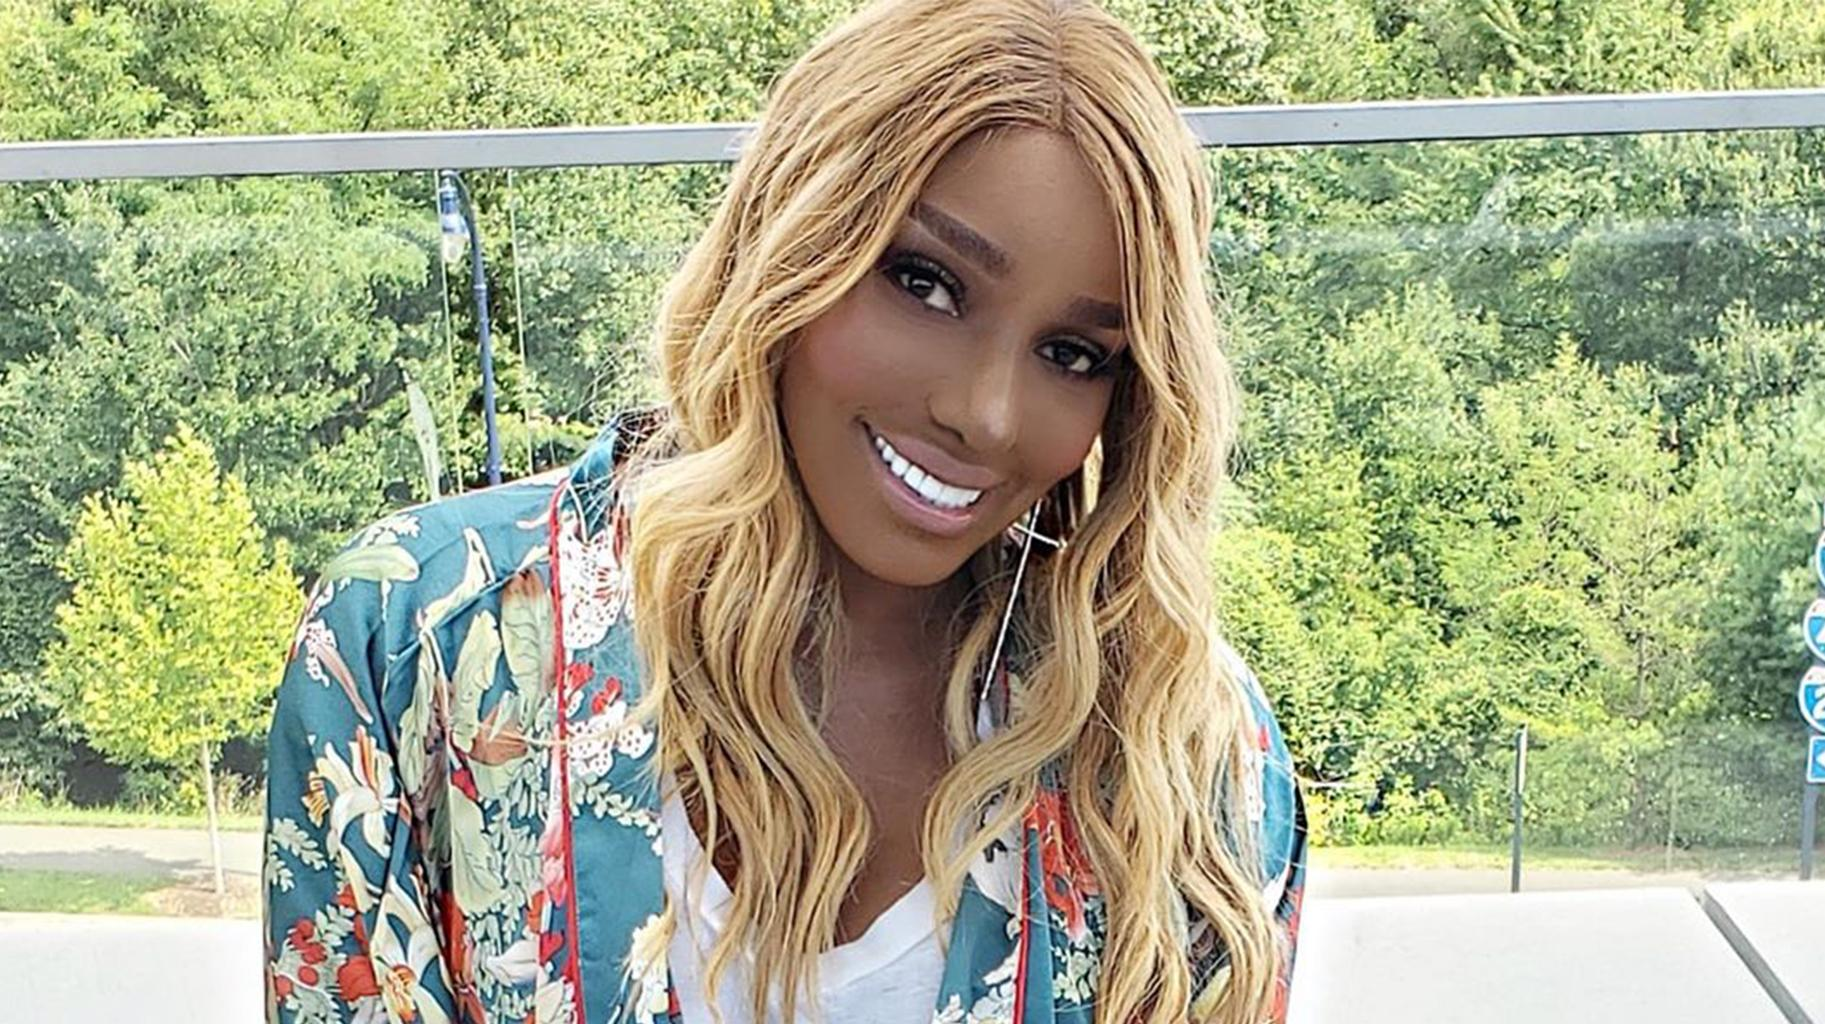 NeNe Leakes Says She's The 'No. 1' Housewife After 'RHOA' Photo Without Her Surfaces